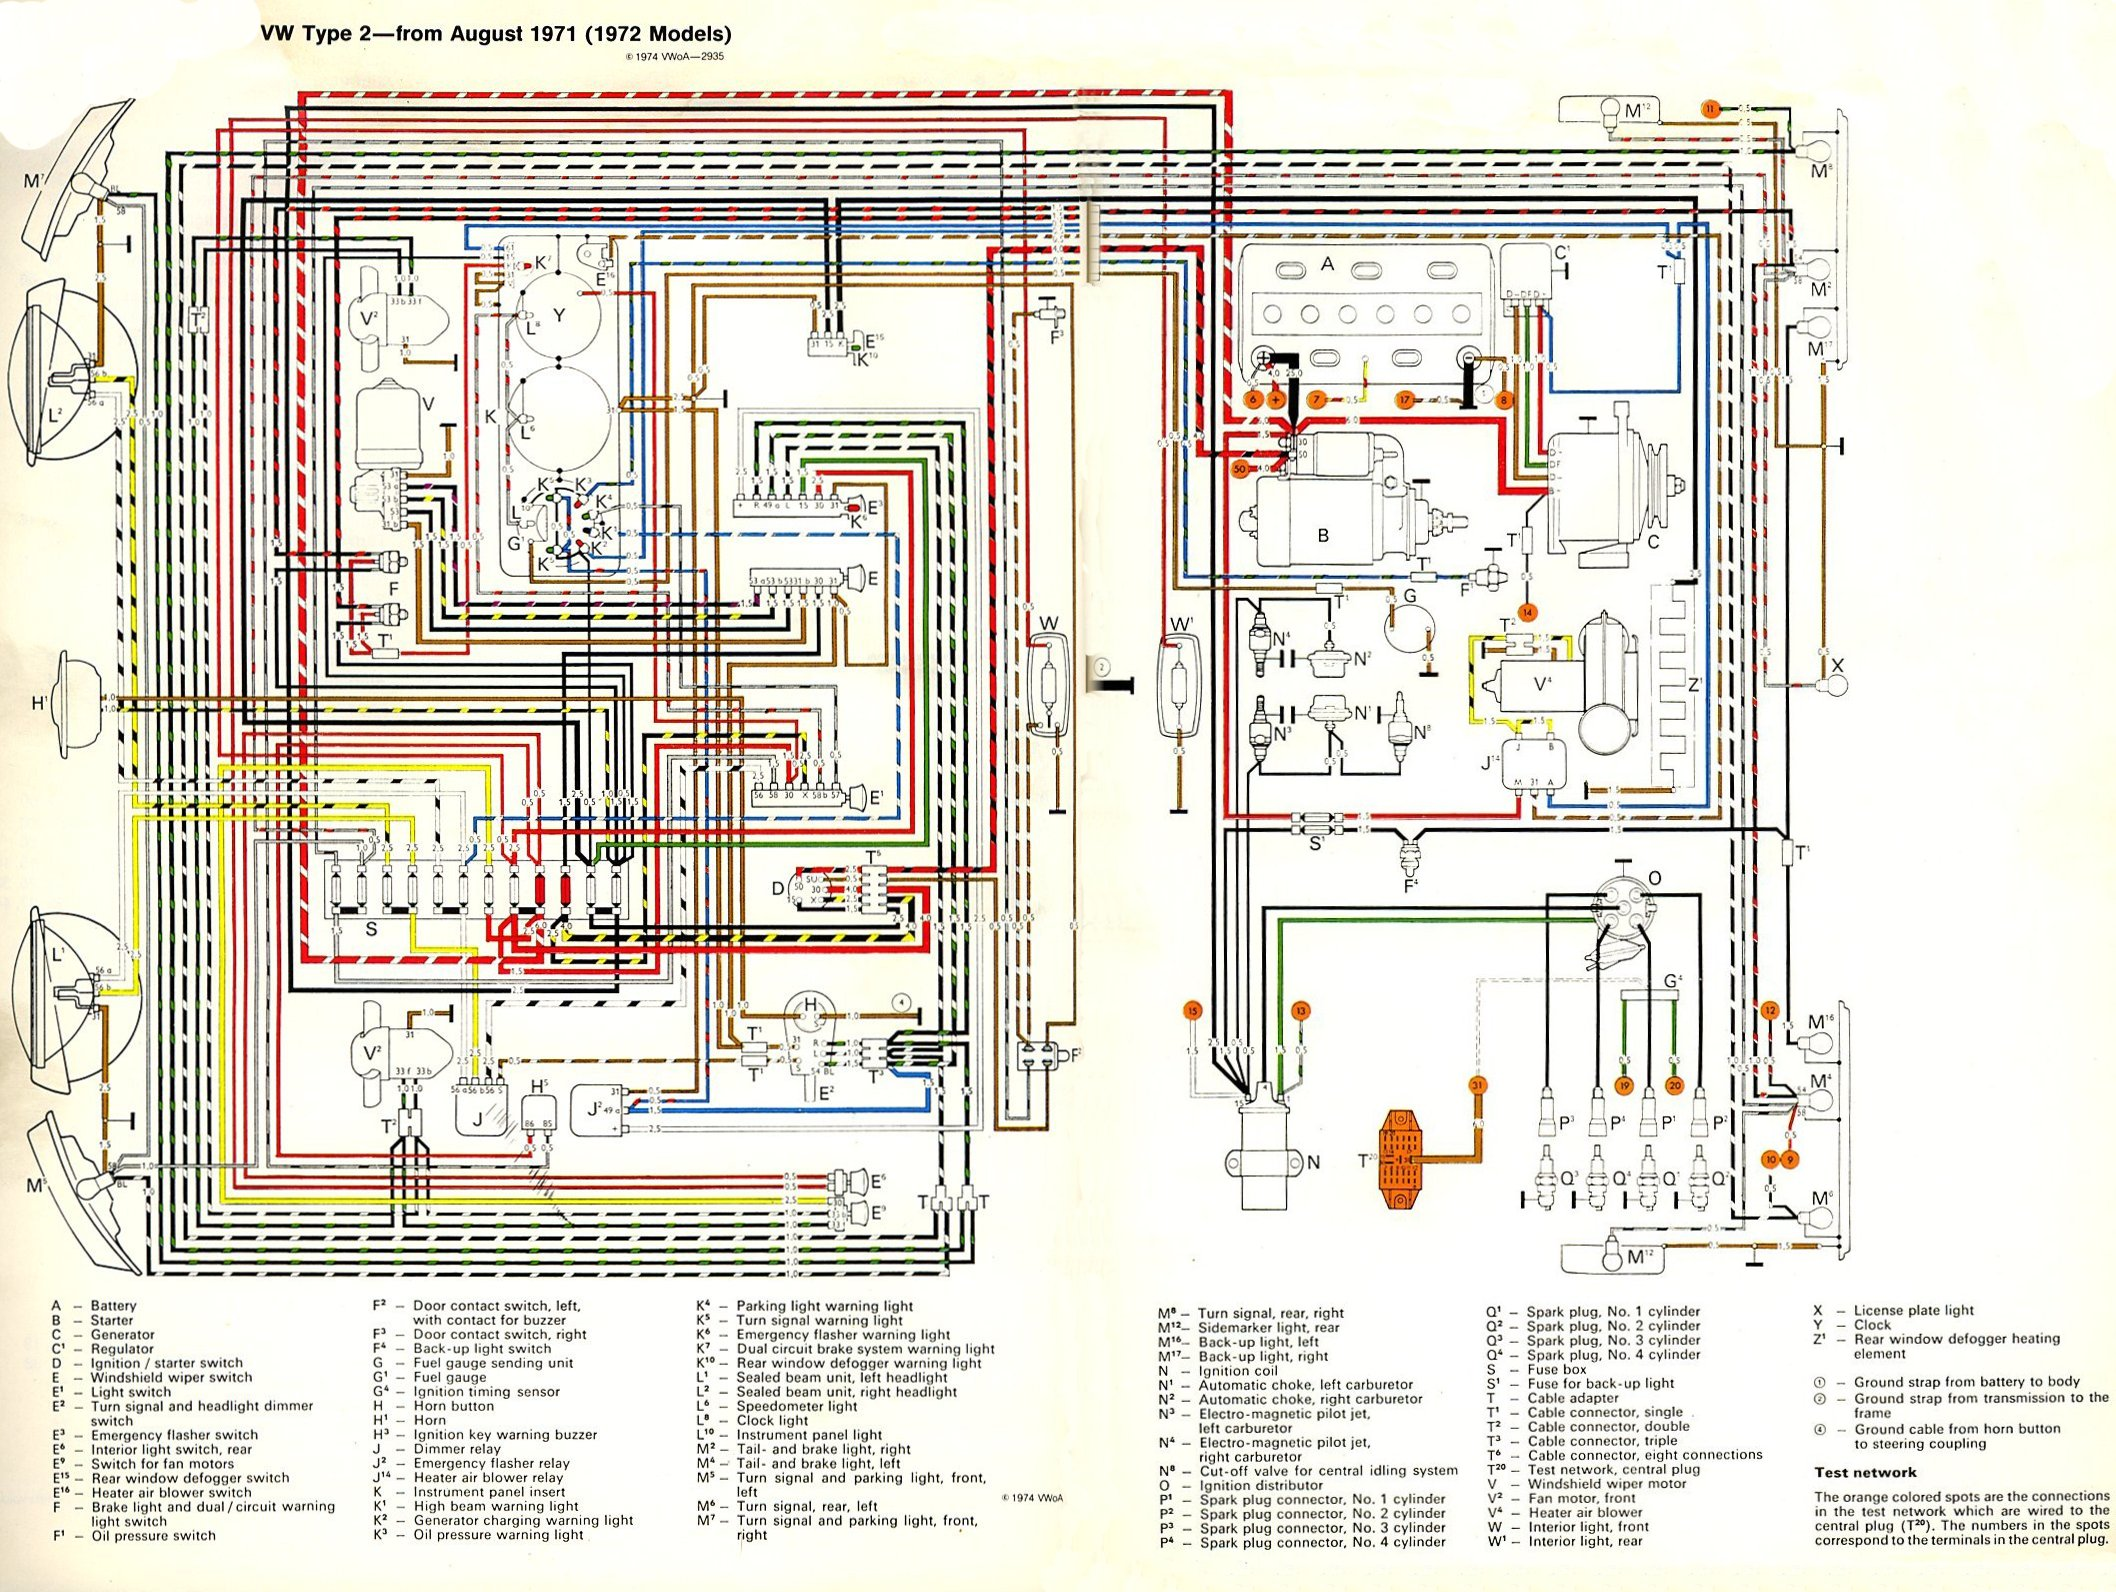 bus_1972_wiring wiring diagram for 1971 vw bus readingrat net 1971 vw bus wiring diagram at gsmportal.co